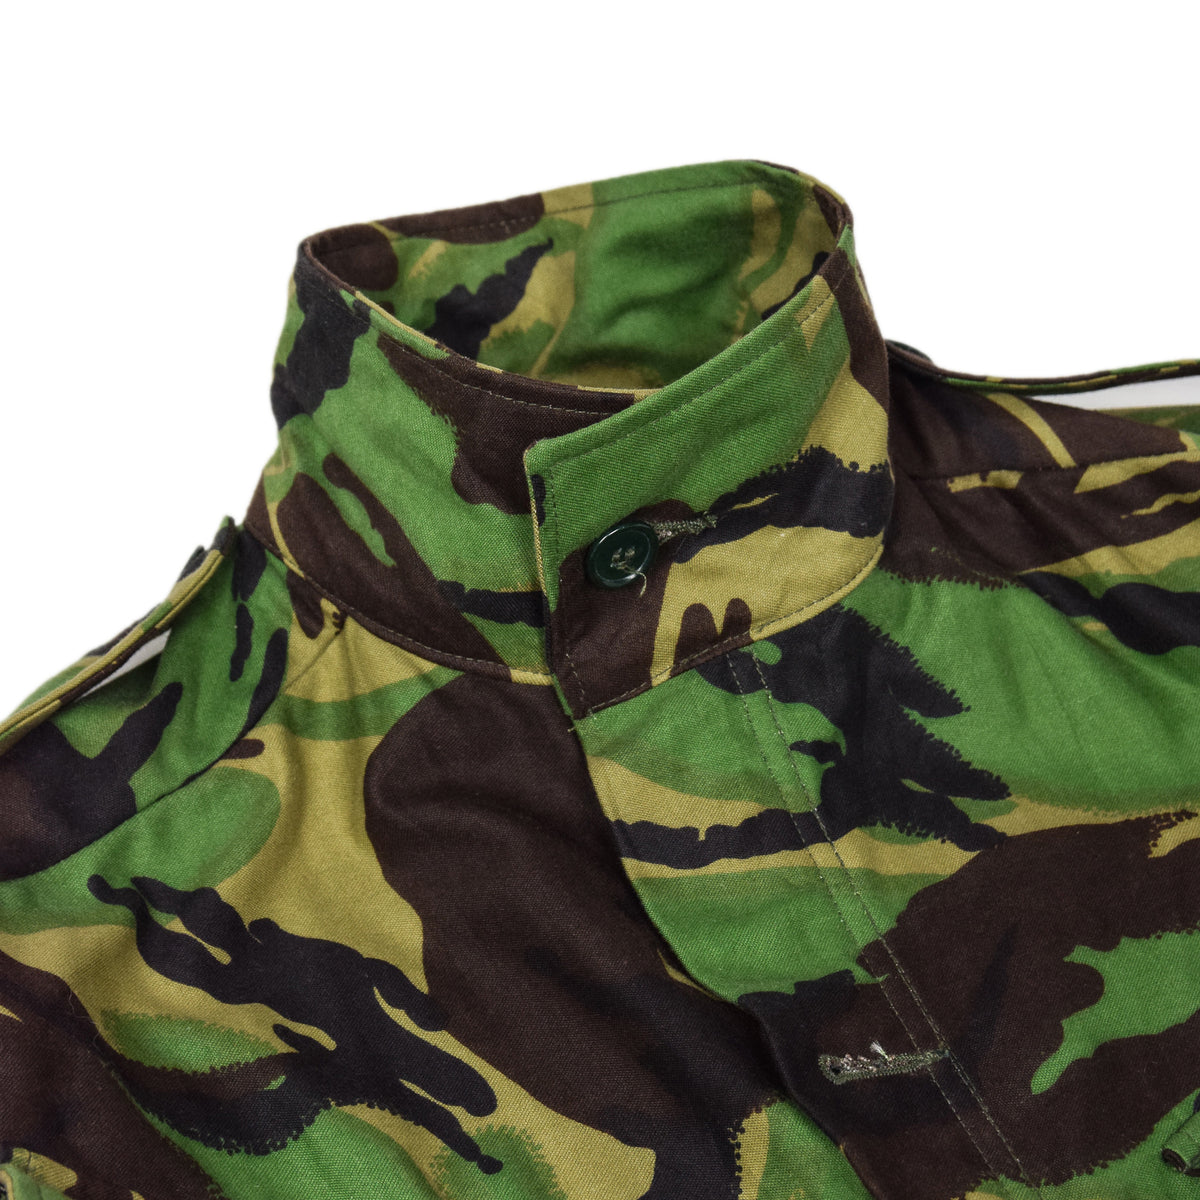 Vintage 90s British Army Combat Smock Woodland DPM Camo Jacket M BUTTON UP COLLAR